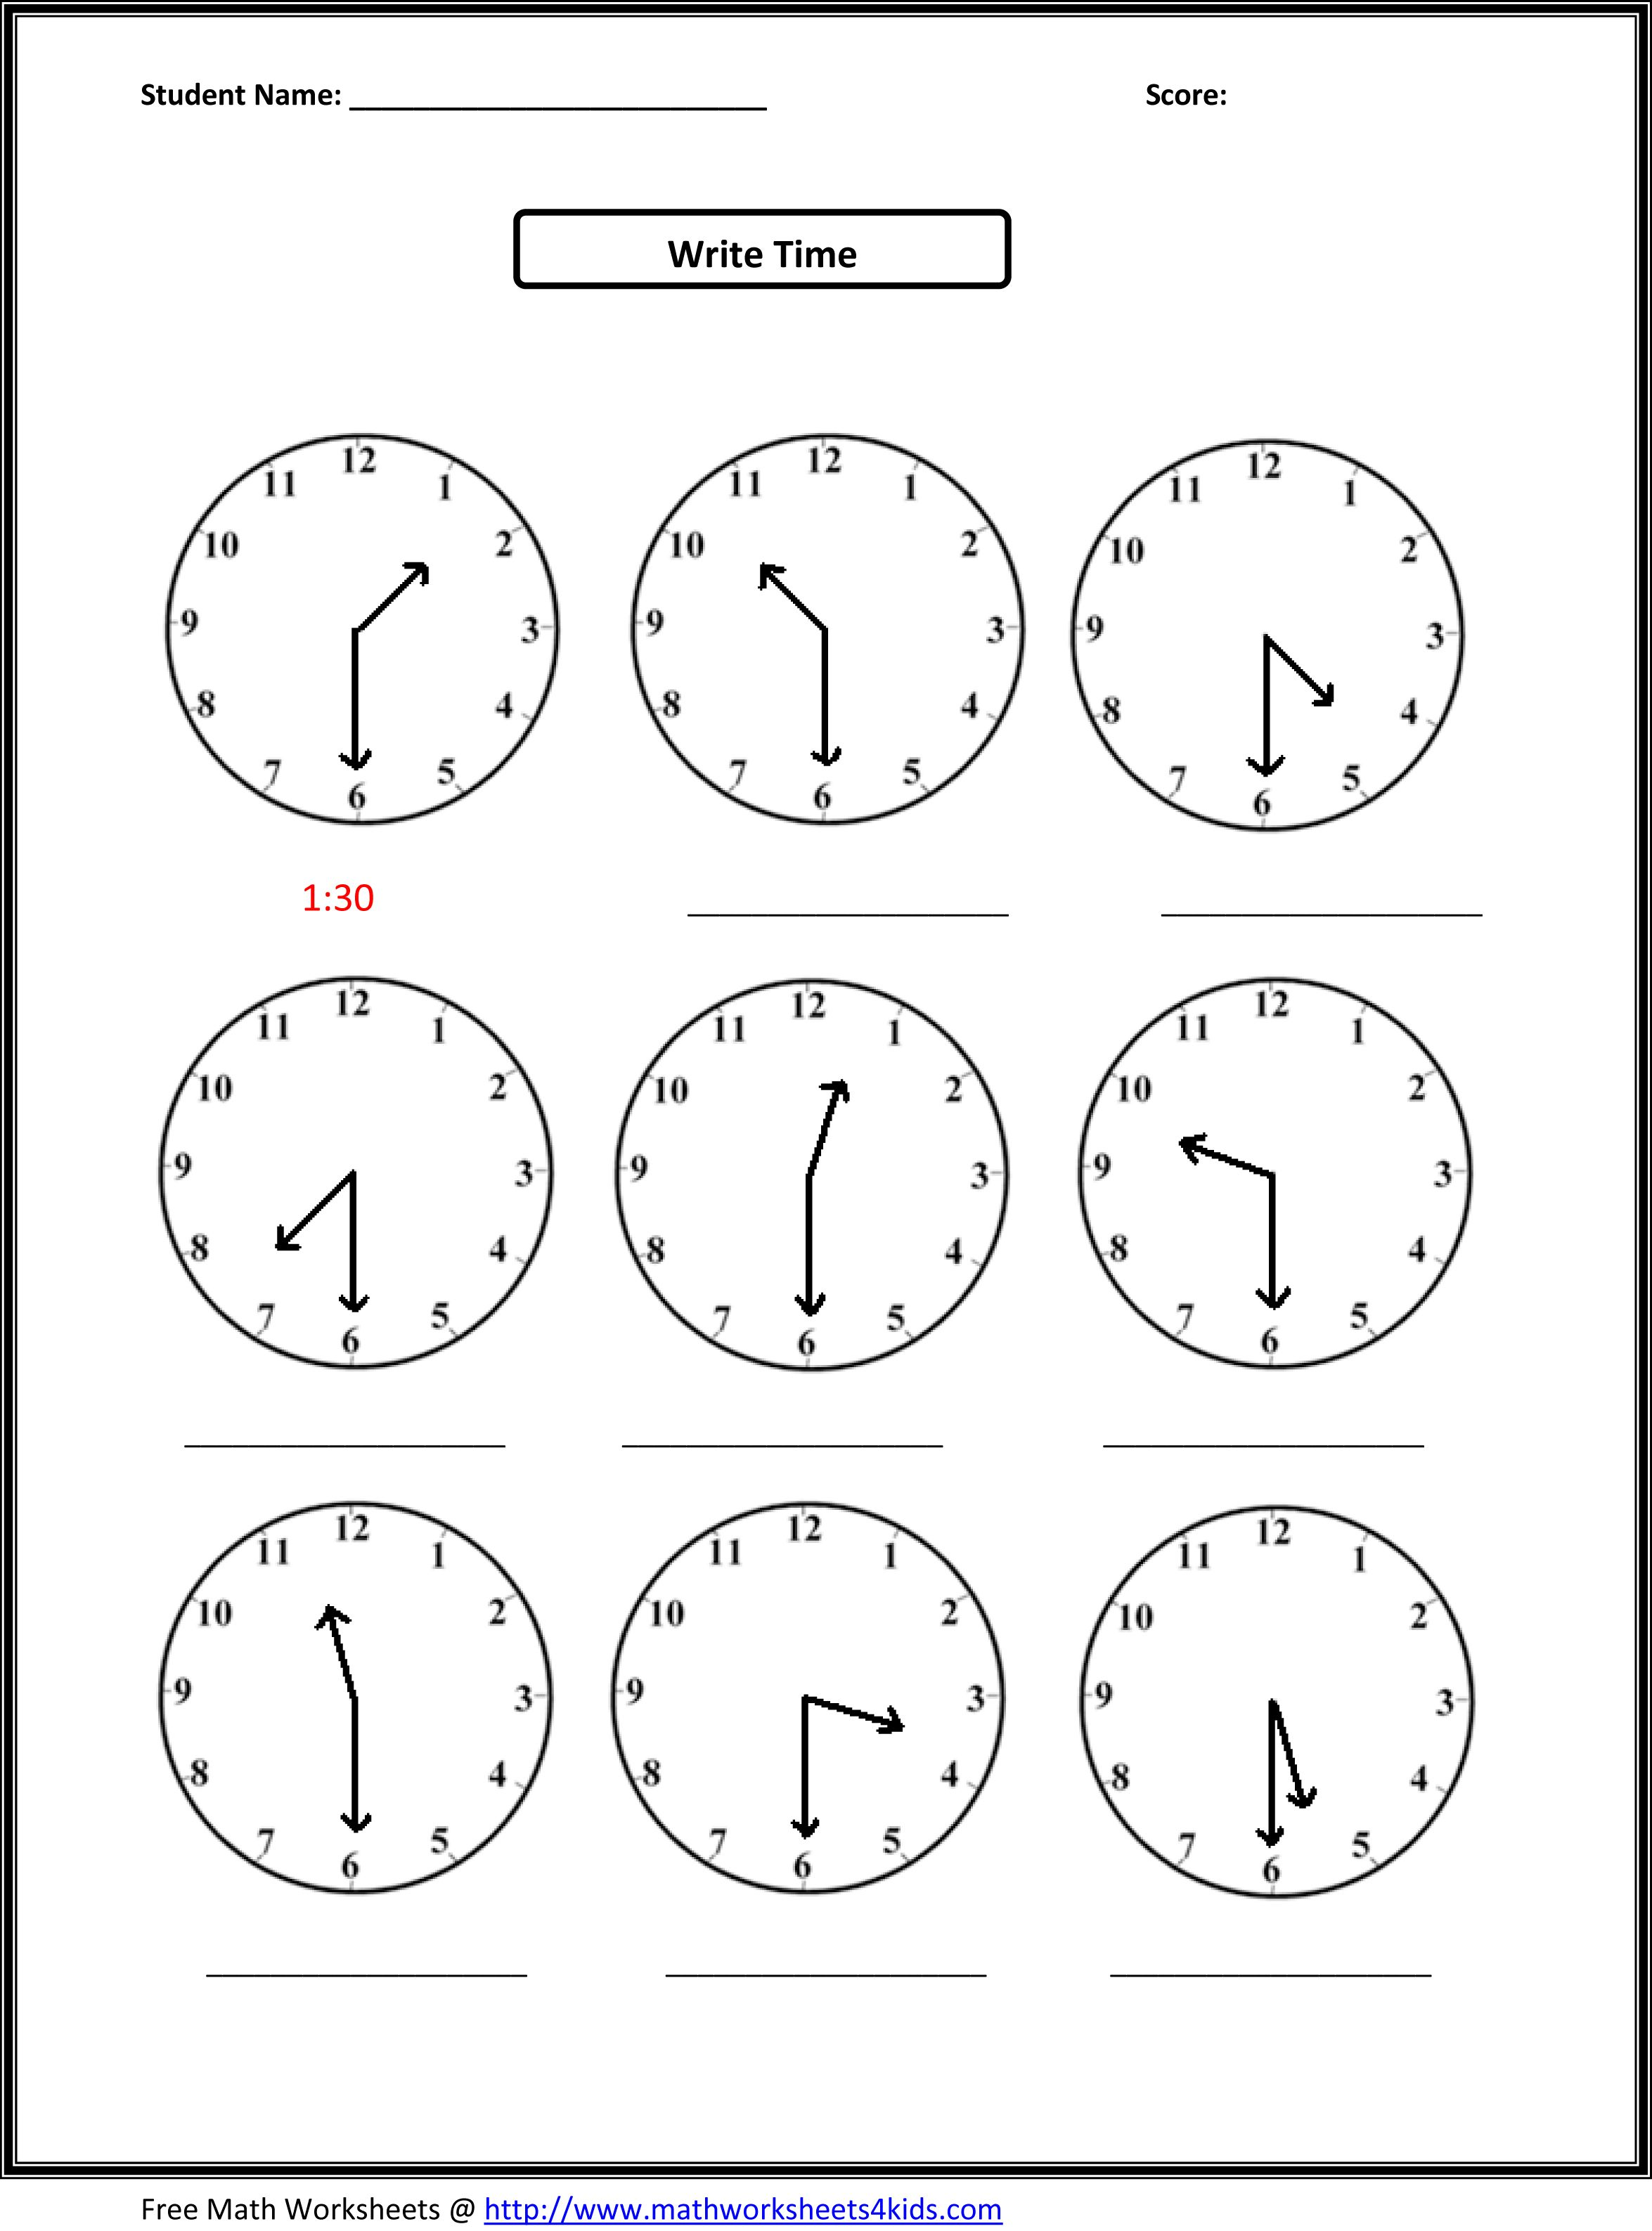 Proatmealus  Unique Worksheet On Time For Grade   Reocurent With Fetching Free Printable Telling Time Worksheets Nd Grade  Reocurent With Cute Writing For Nd Grade Worksheets Also Distributive Property Solving Equations Worksheet In Addition Present Progressive Worksheets And Graphing Data Worksheets High School As Well As Adding And Subtracting Complex Numbers Worksheet Additionally High School Psychology Worksheets From Reocurentcom With Proatmealus  Fetching Worksheet On Time For Grade   Reocurent With Cute Free Printable Telling Time Worksheets Nd Grade  Reocurent And Unique Writing For Nd Grade Worksheets Also Distributive Property Solving Equations Worksheet In Addition Present Progressive Worksheets From Reocurentcom